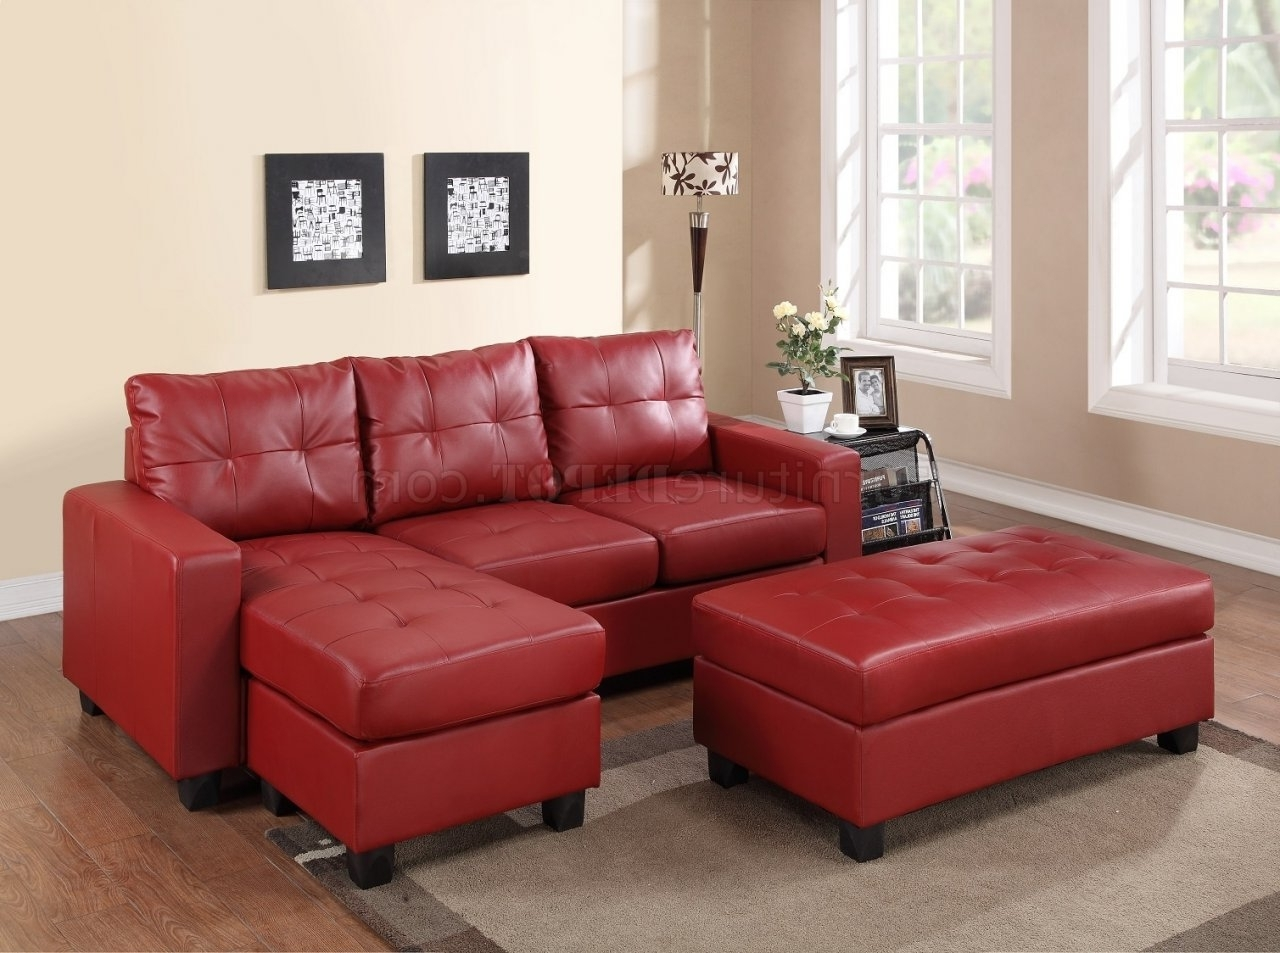 Red Leather Sectional Sofas With Recliners For Most Popular Sofas: Luxury Your Living Room Sofas Design With Red Sectional (View 14 of 15)